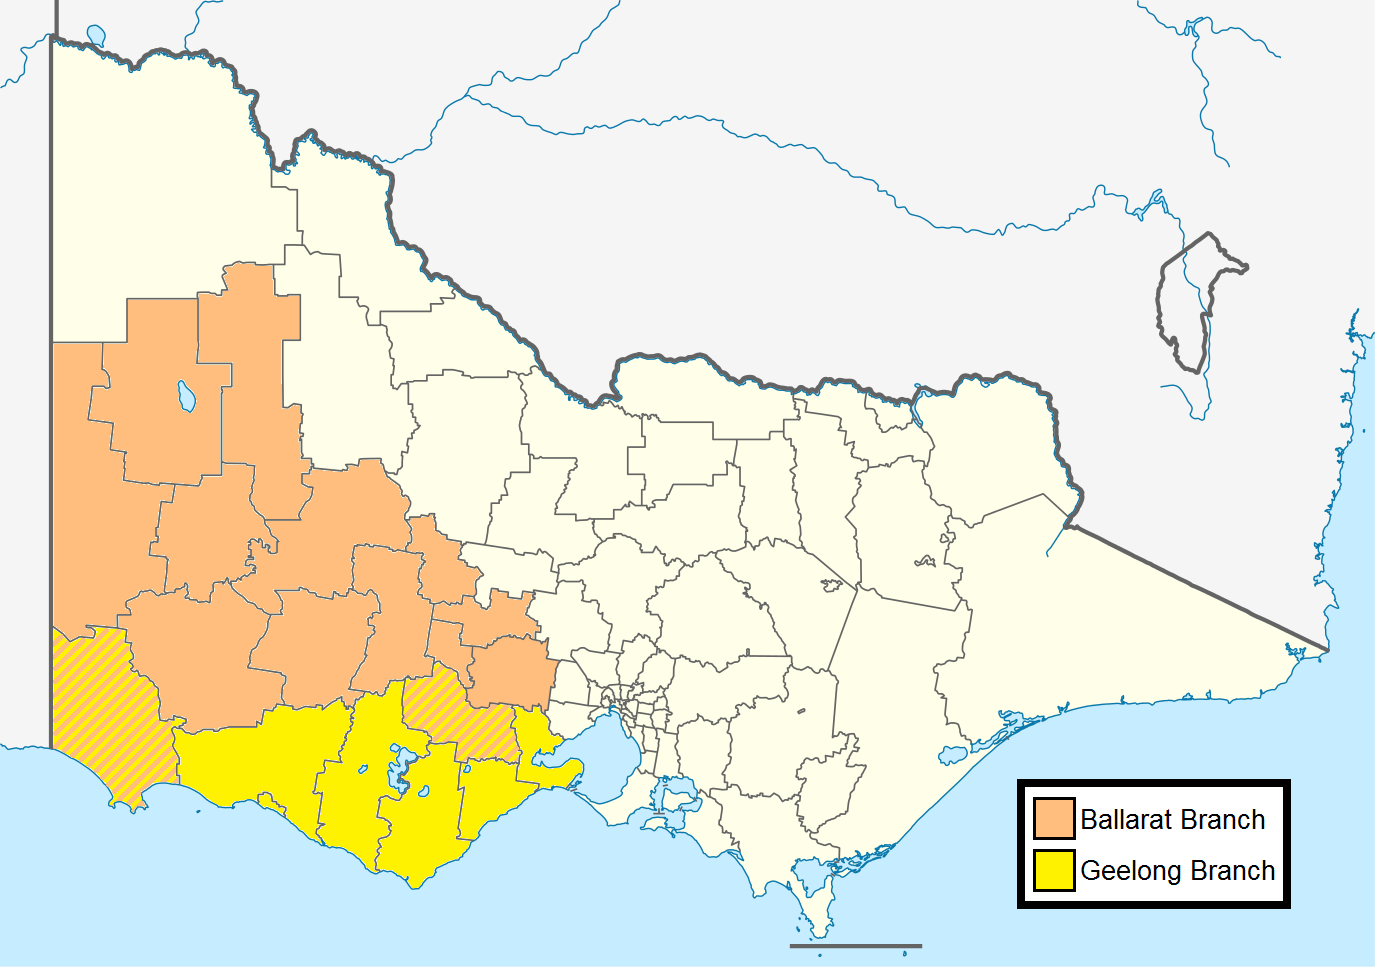 PTUA regional branch areas